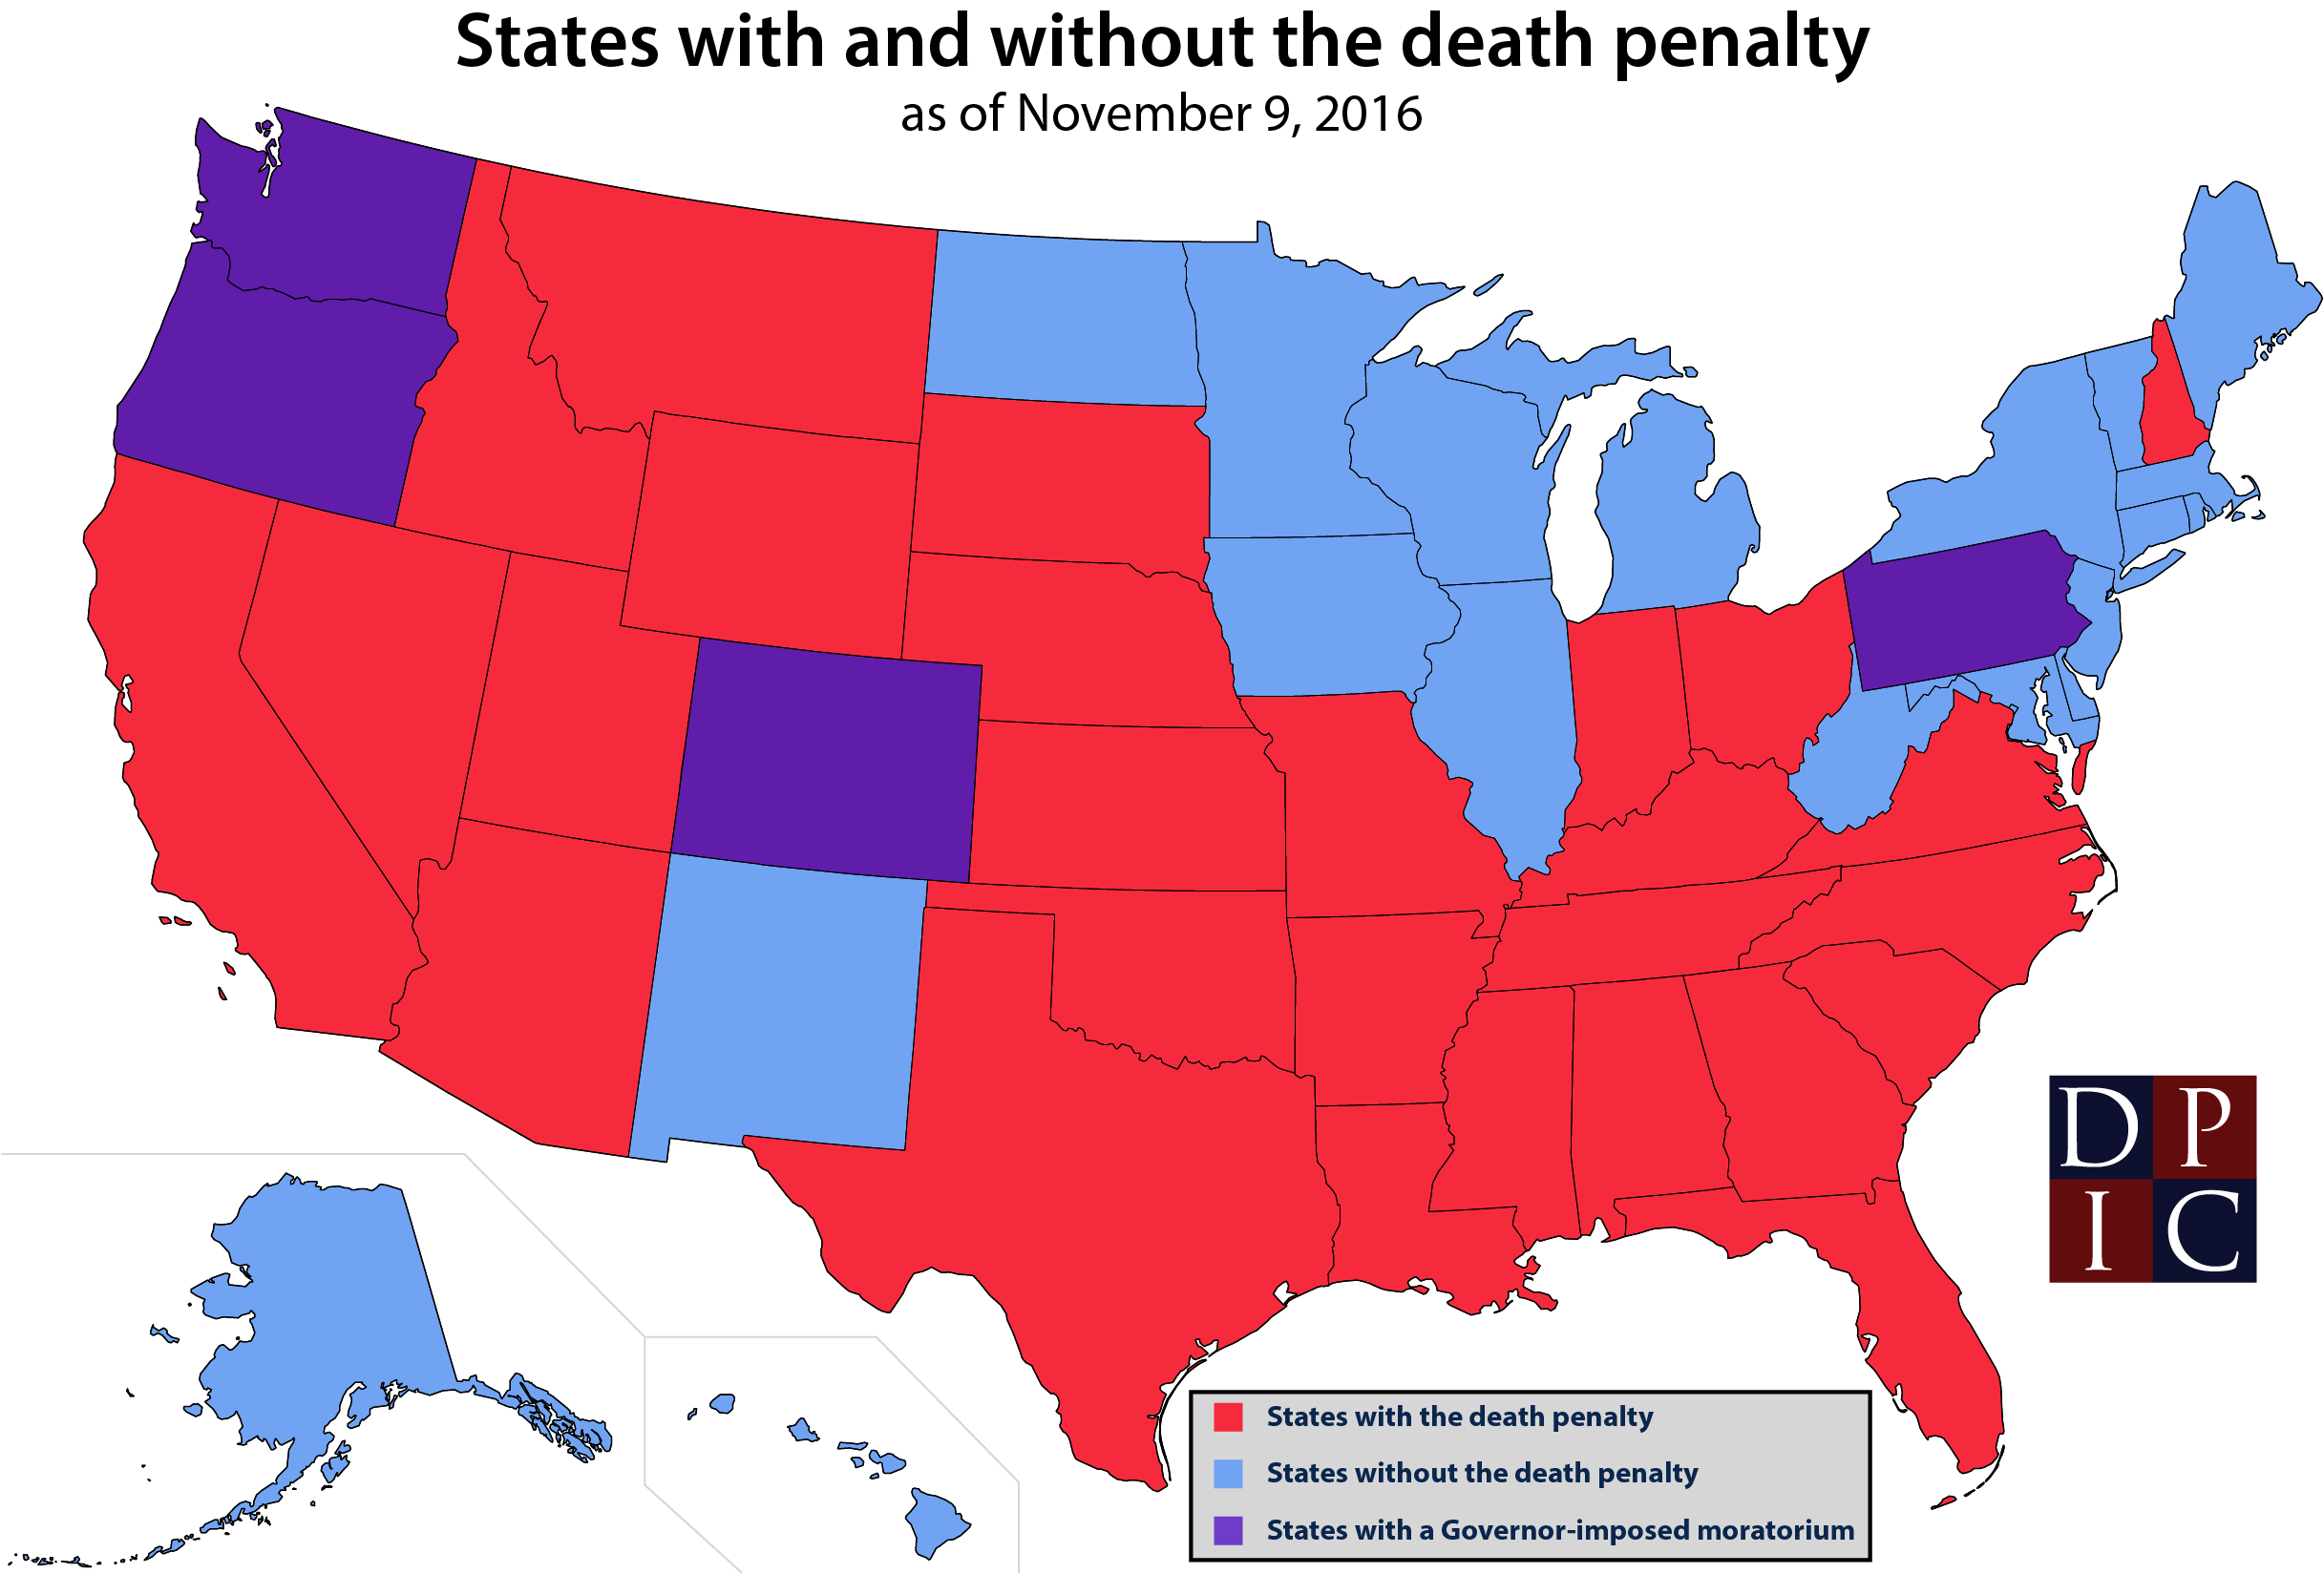 an analysis of the debate related to capital punishment in united states And a recent pew research center survey found an uptick in the share of americans who favor capital punishment  united states as the debate  analysis and.